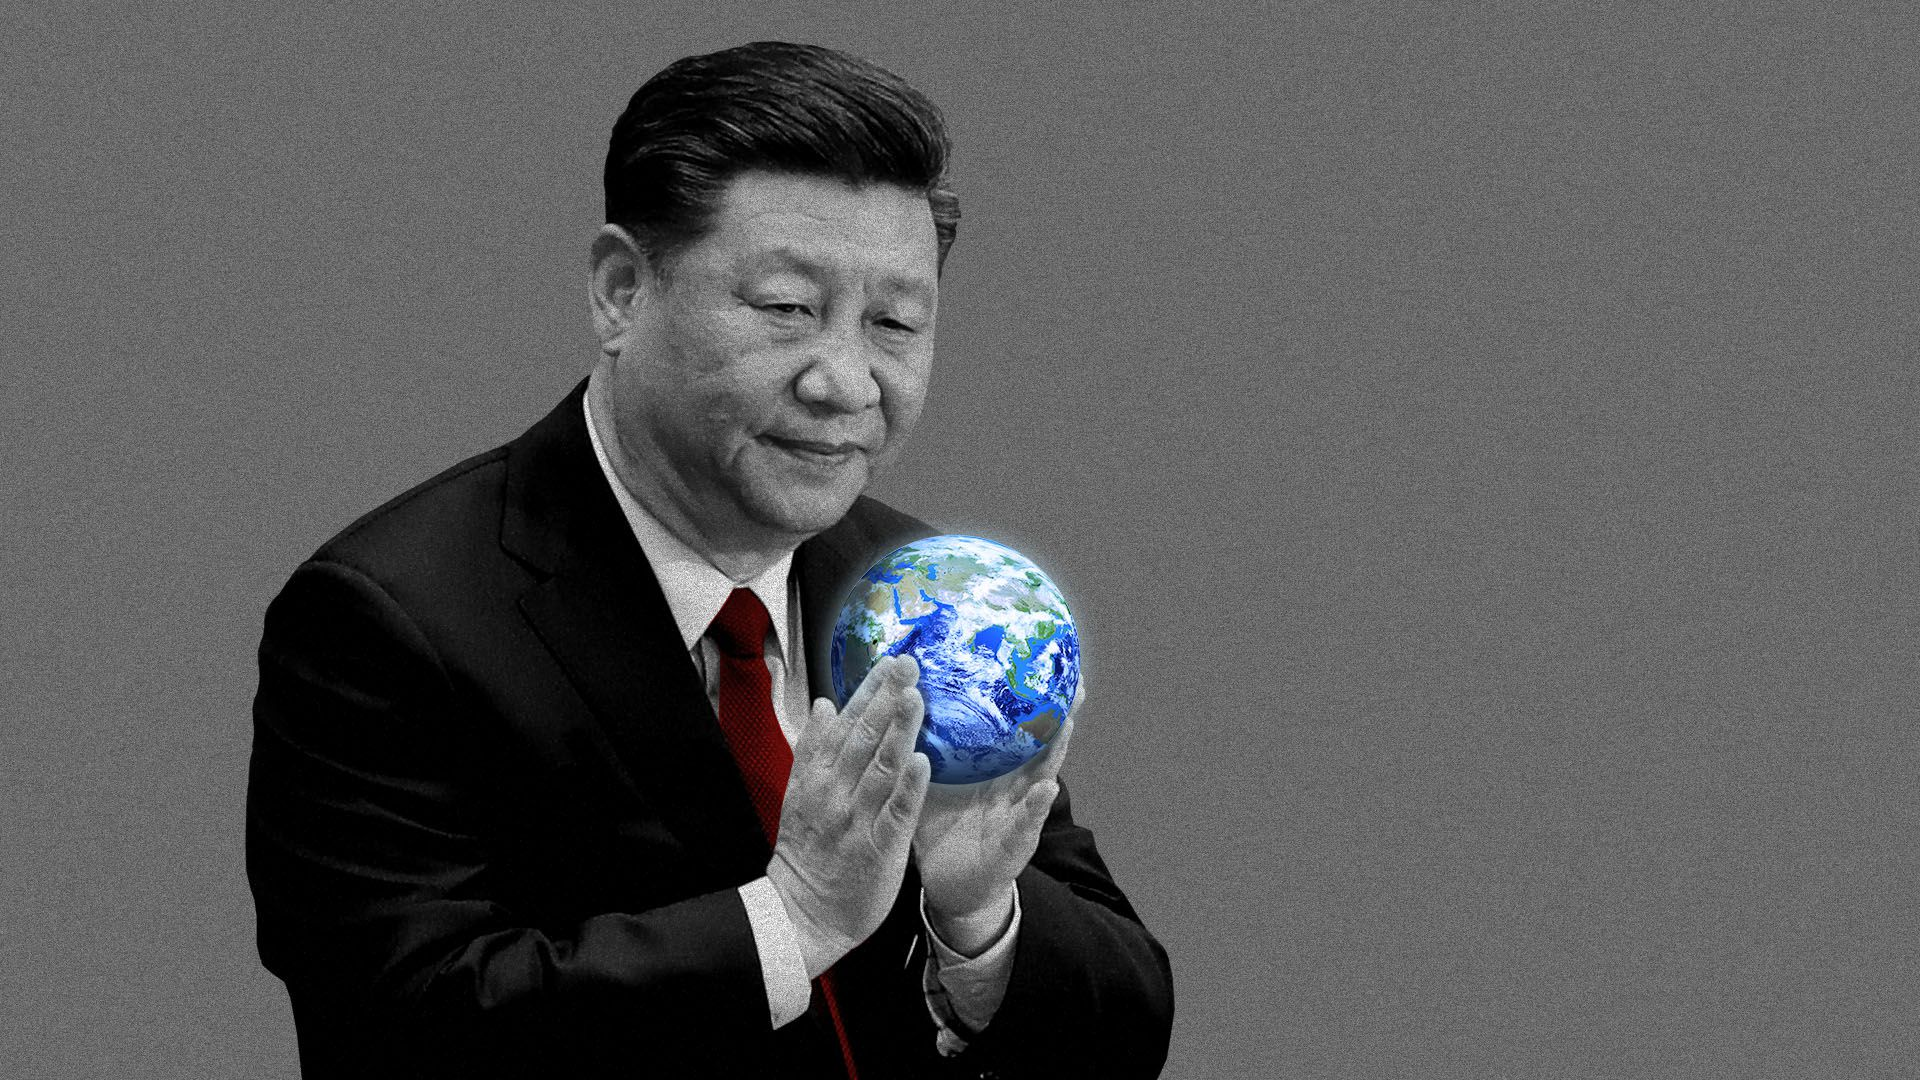 Illustration of Chinese President Xi Jinping holding a small globe